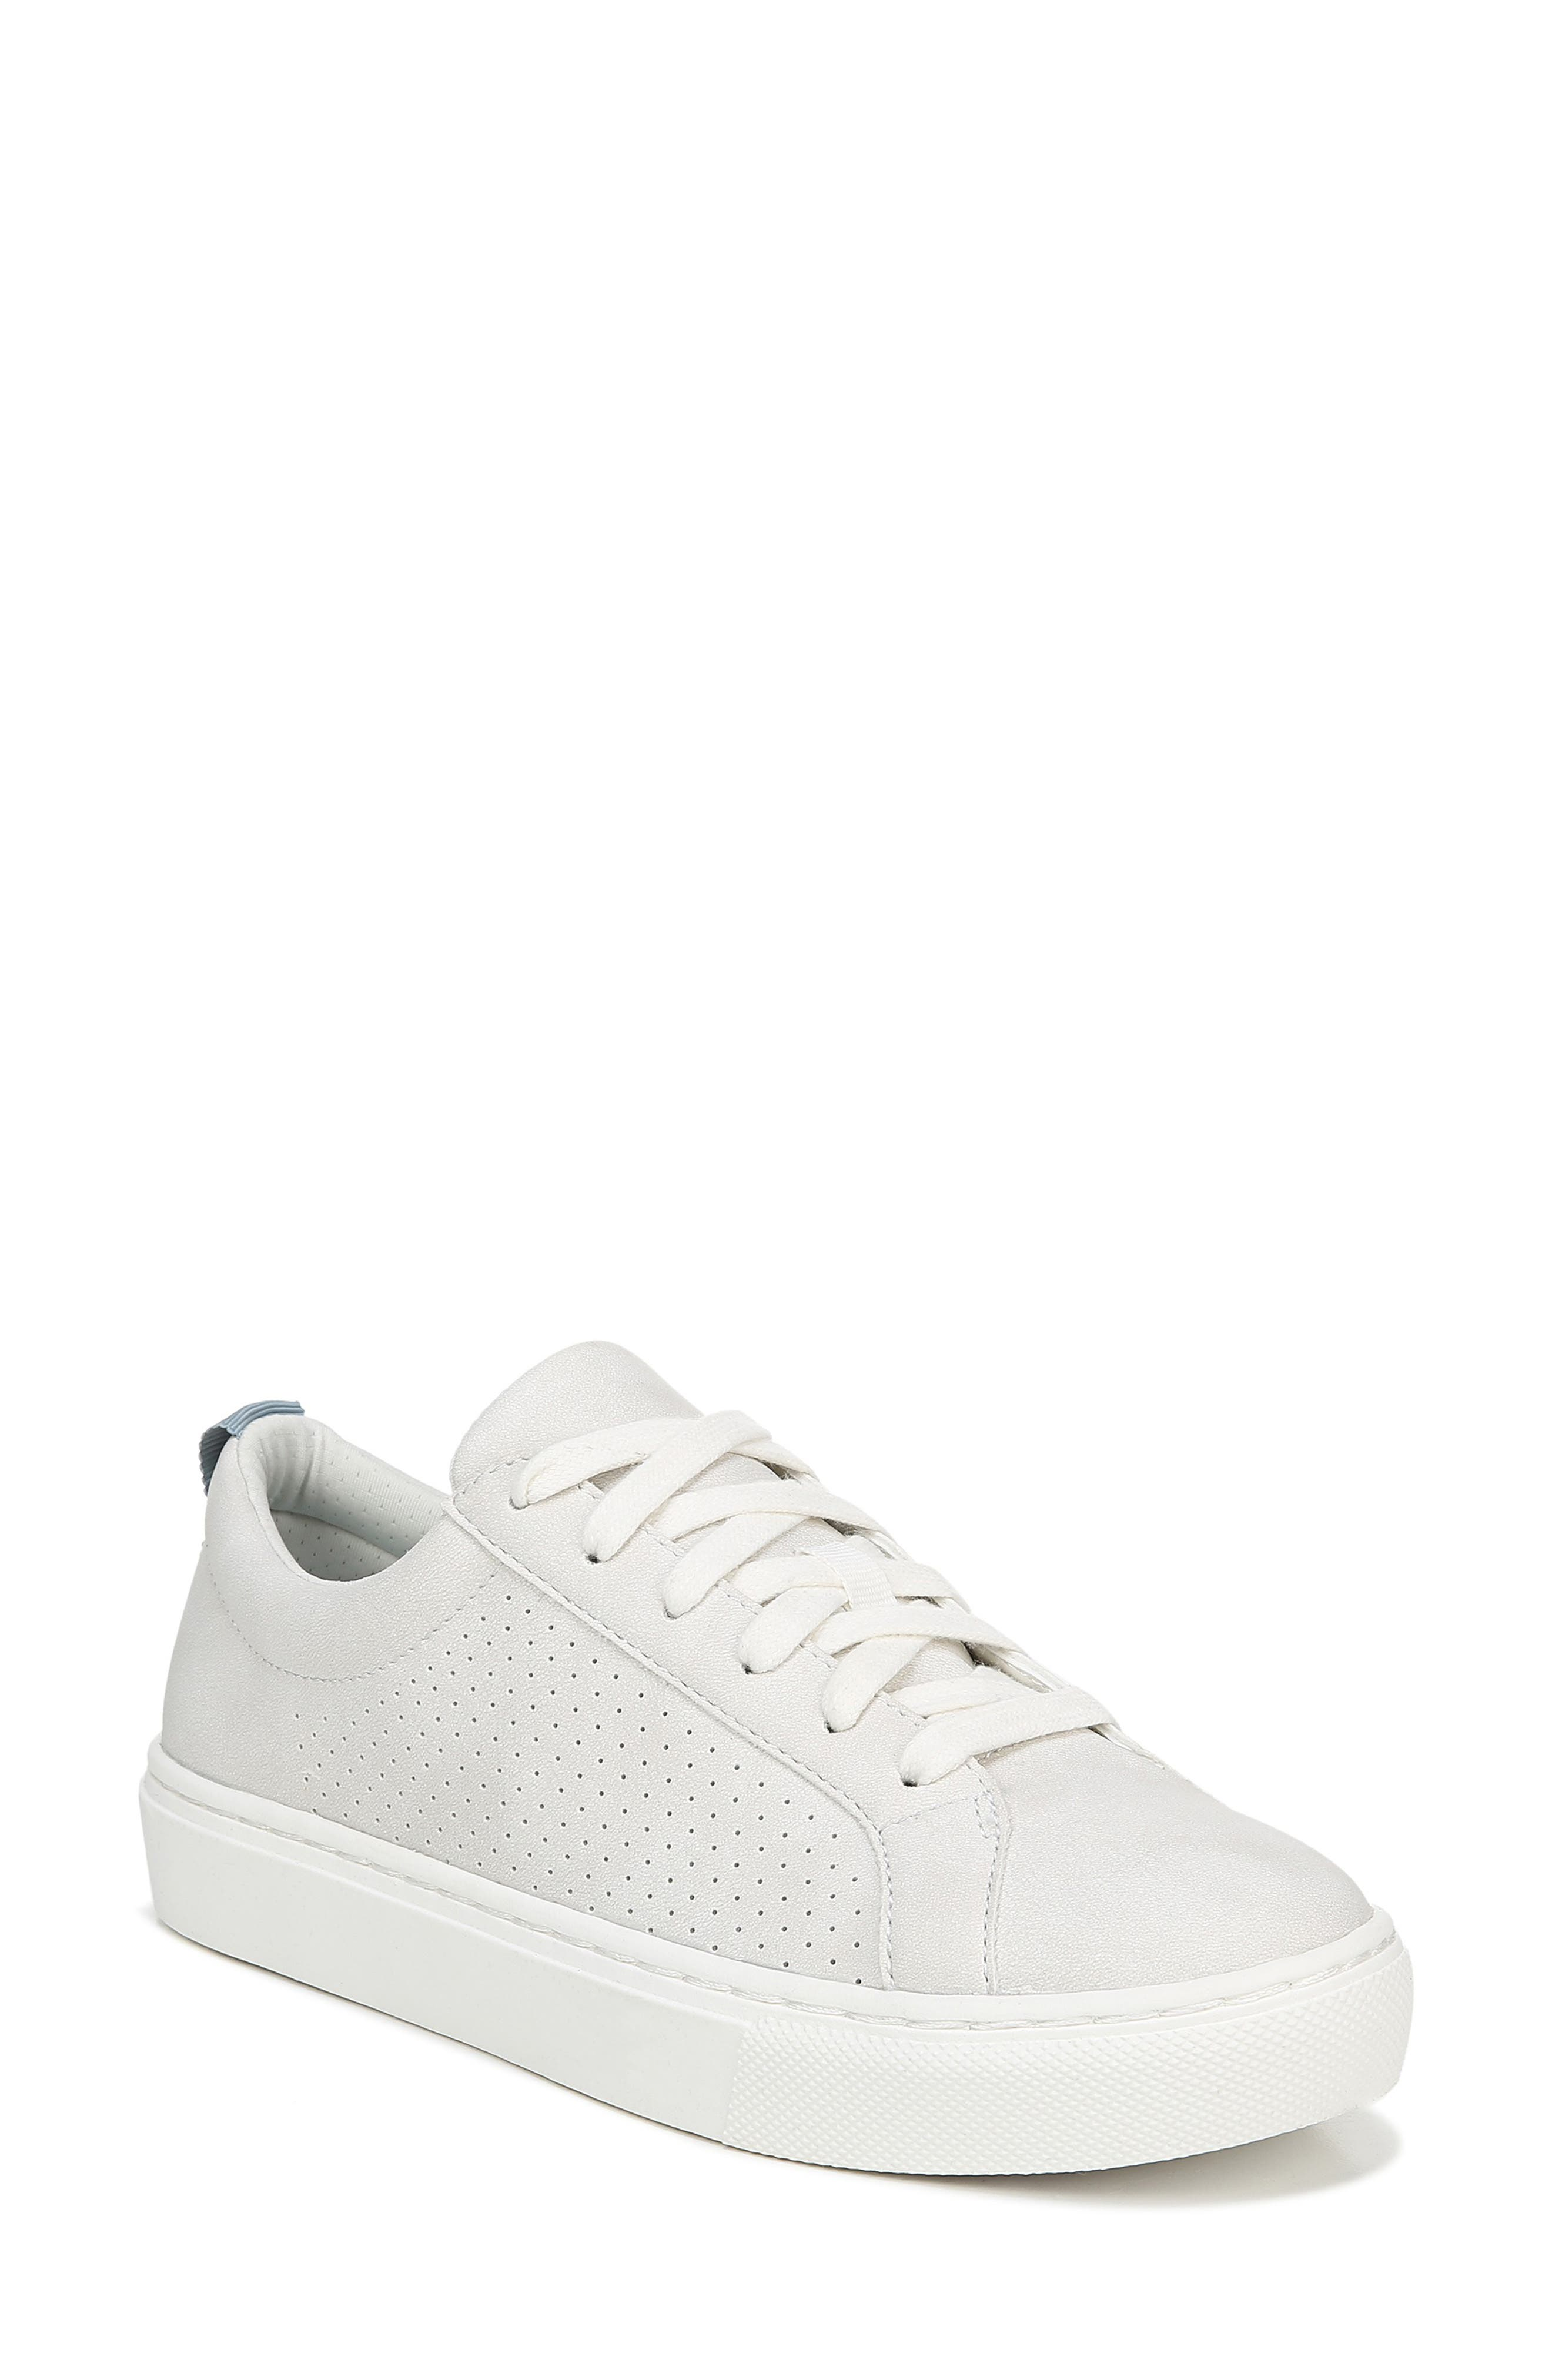 DR. SCHOLL'S No Bad Vibes Sneaker, Main, color, WHITE FAUX LEATHER